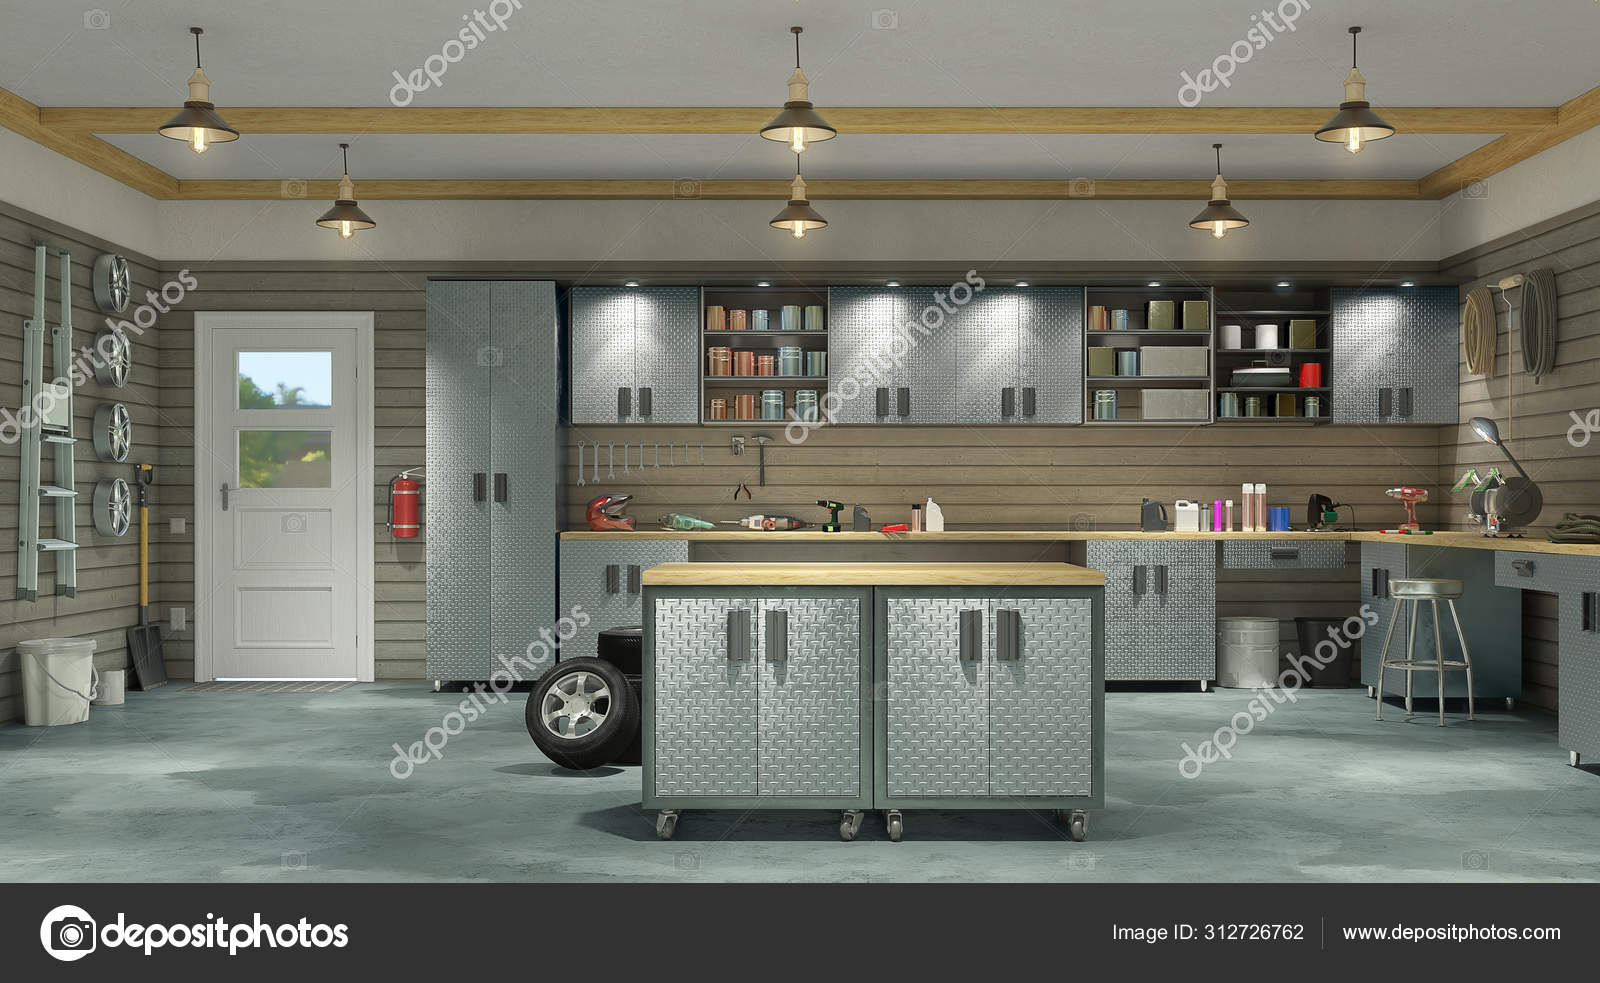 Modern Garage Interior 3d Illustration Stock Photo C Urfingus 312726762